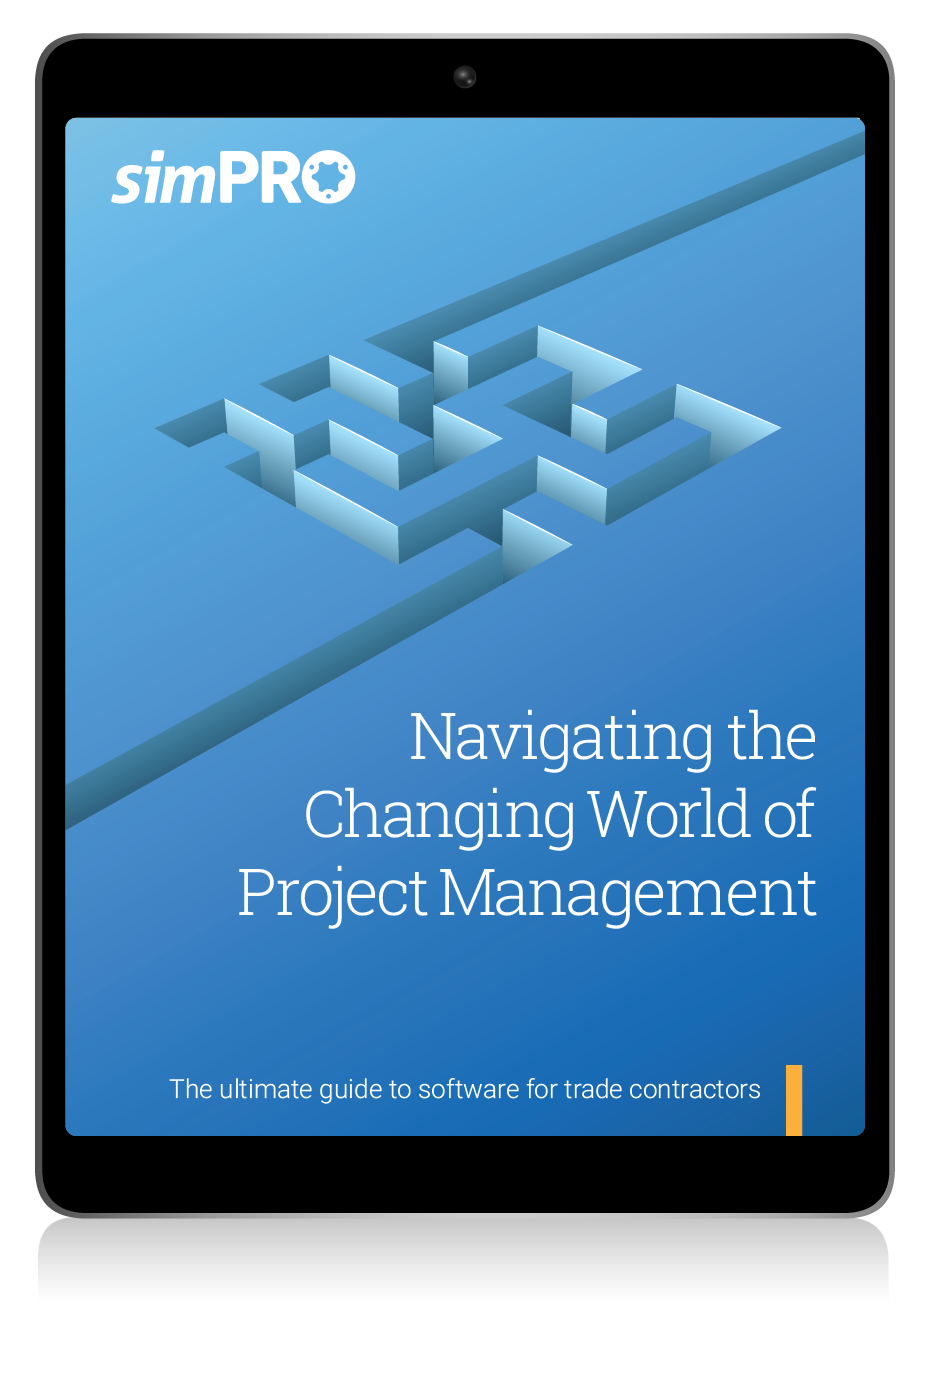 IPad displaying the simPRO eBook, Navigating the changing world of project management